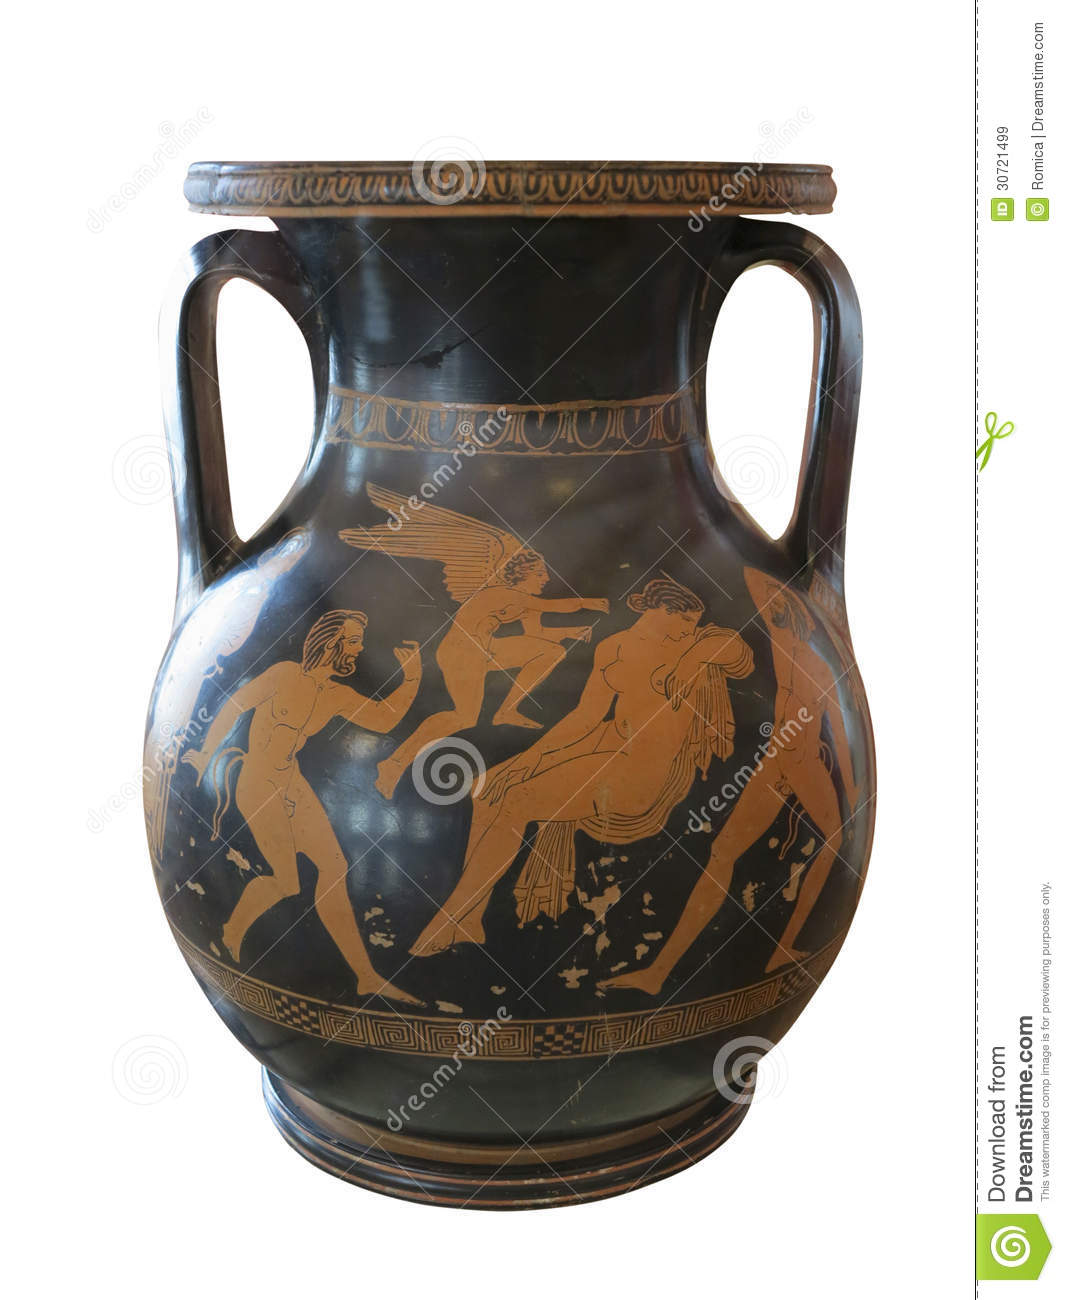 Ancient greek vase exposed in museum royalty free stock for Ancient greek pottery decoration